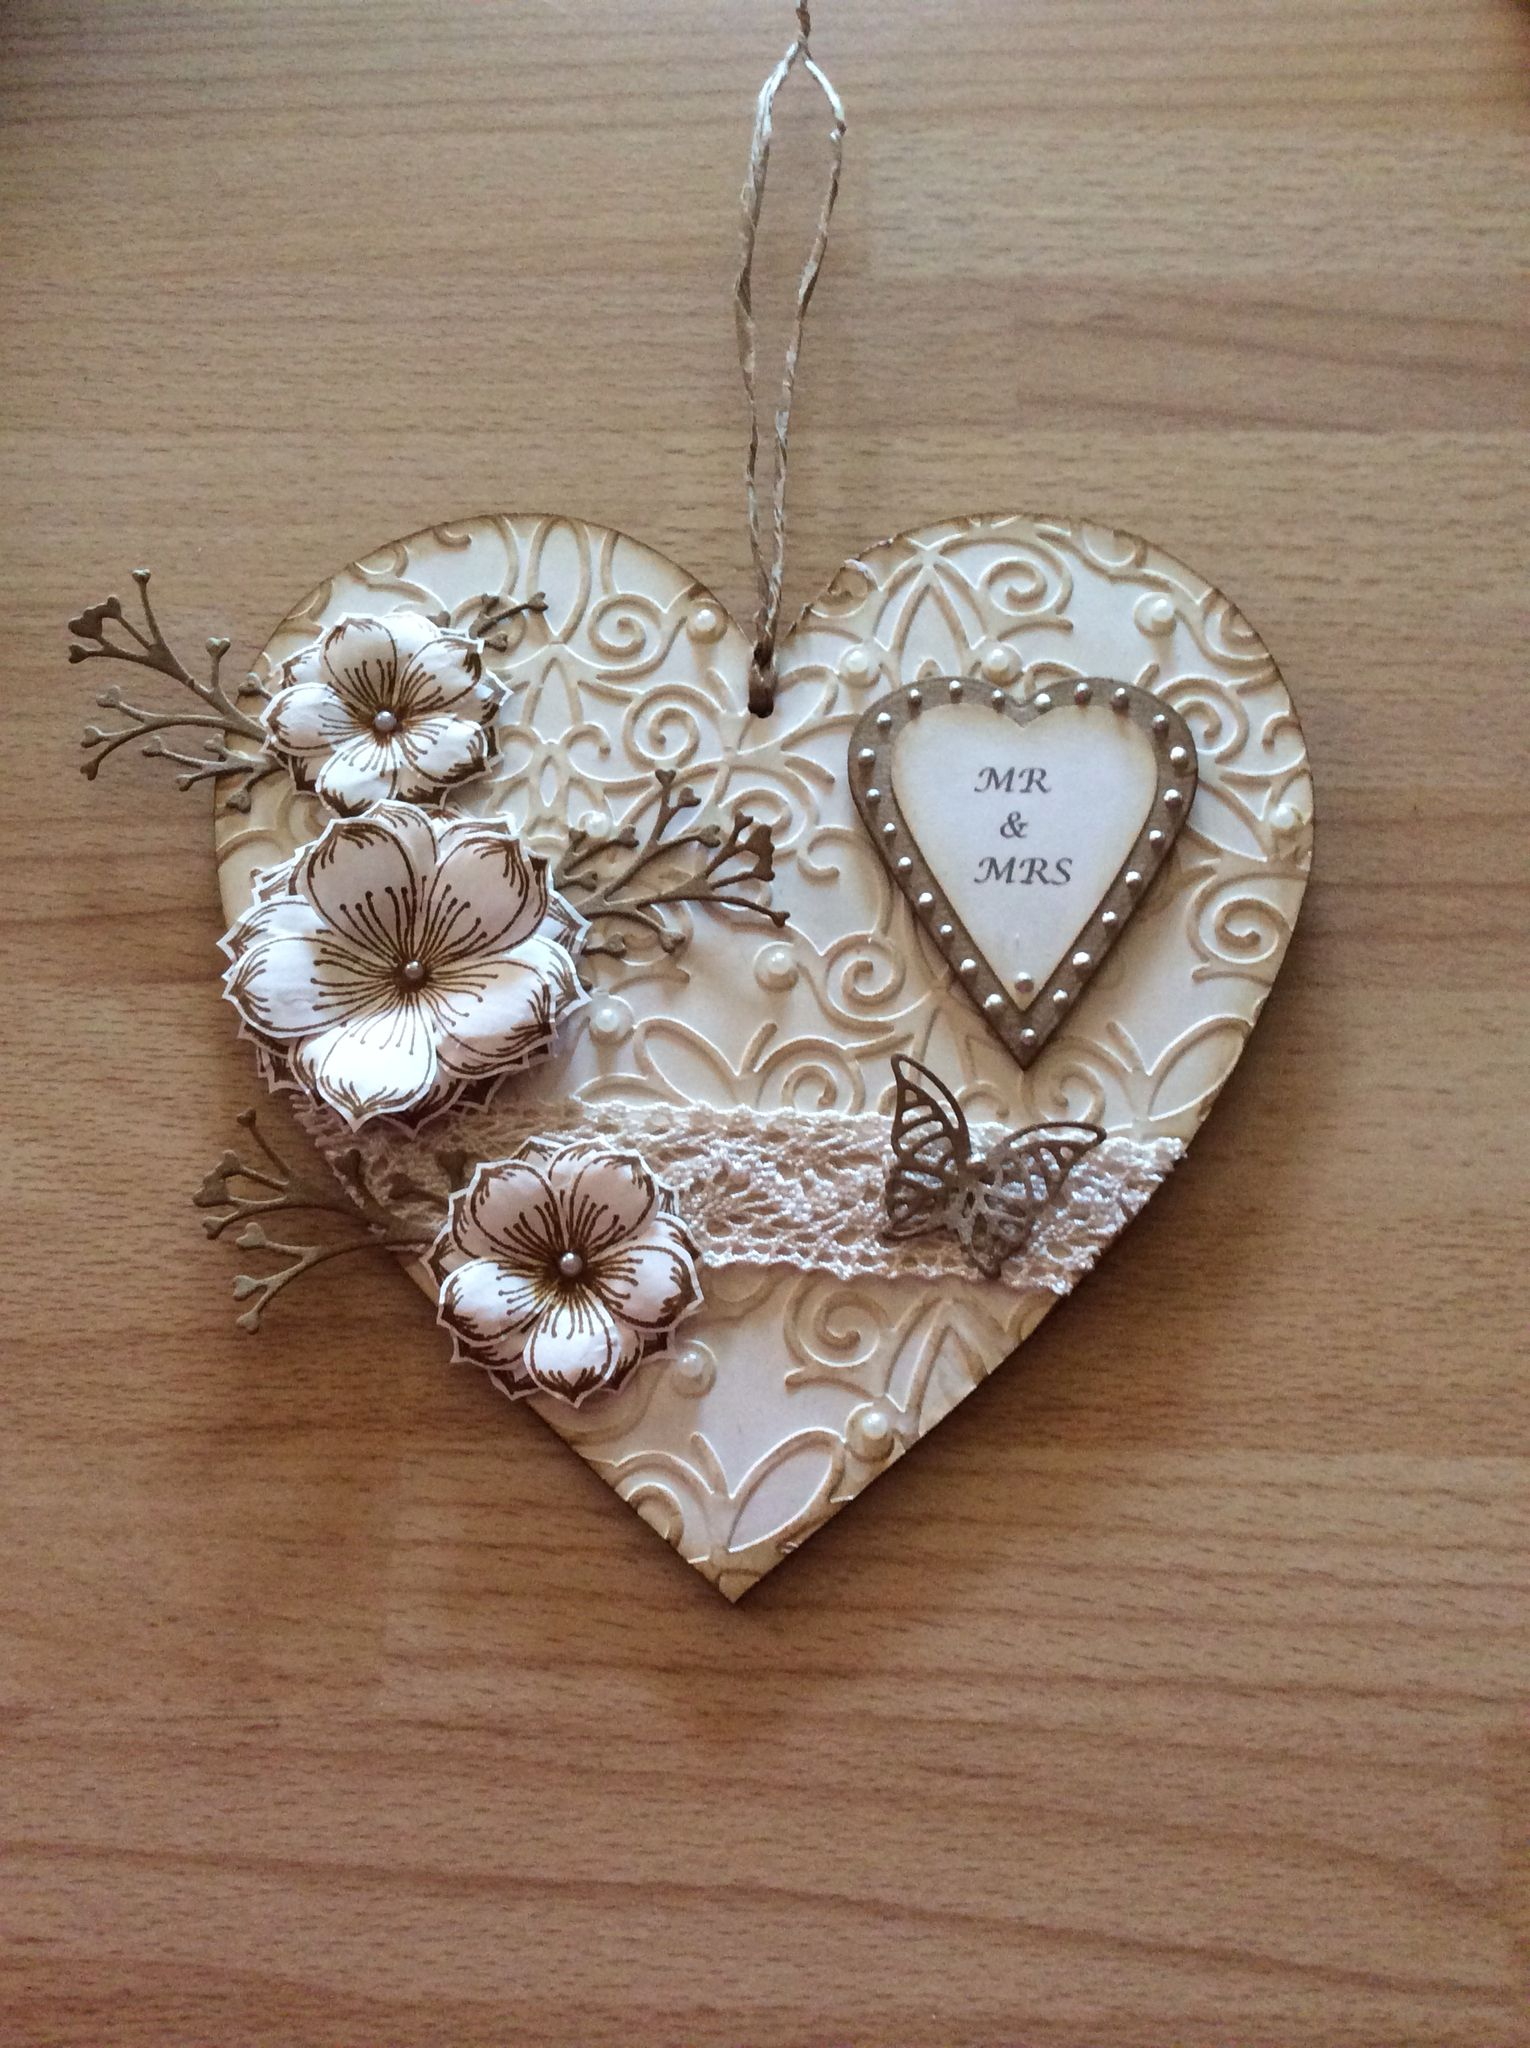 Mdf Heart Done Using Dreamees Stamps Heart Crafts Wooden Hearts Crafts Crafts